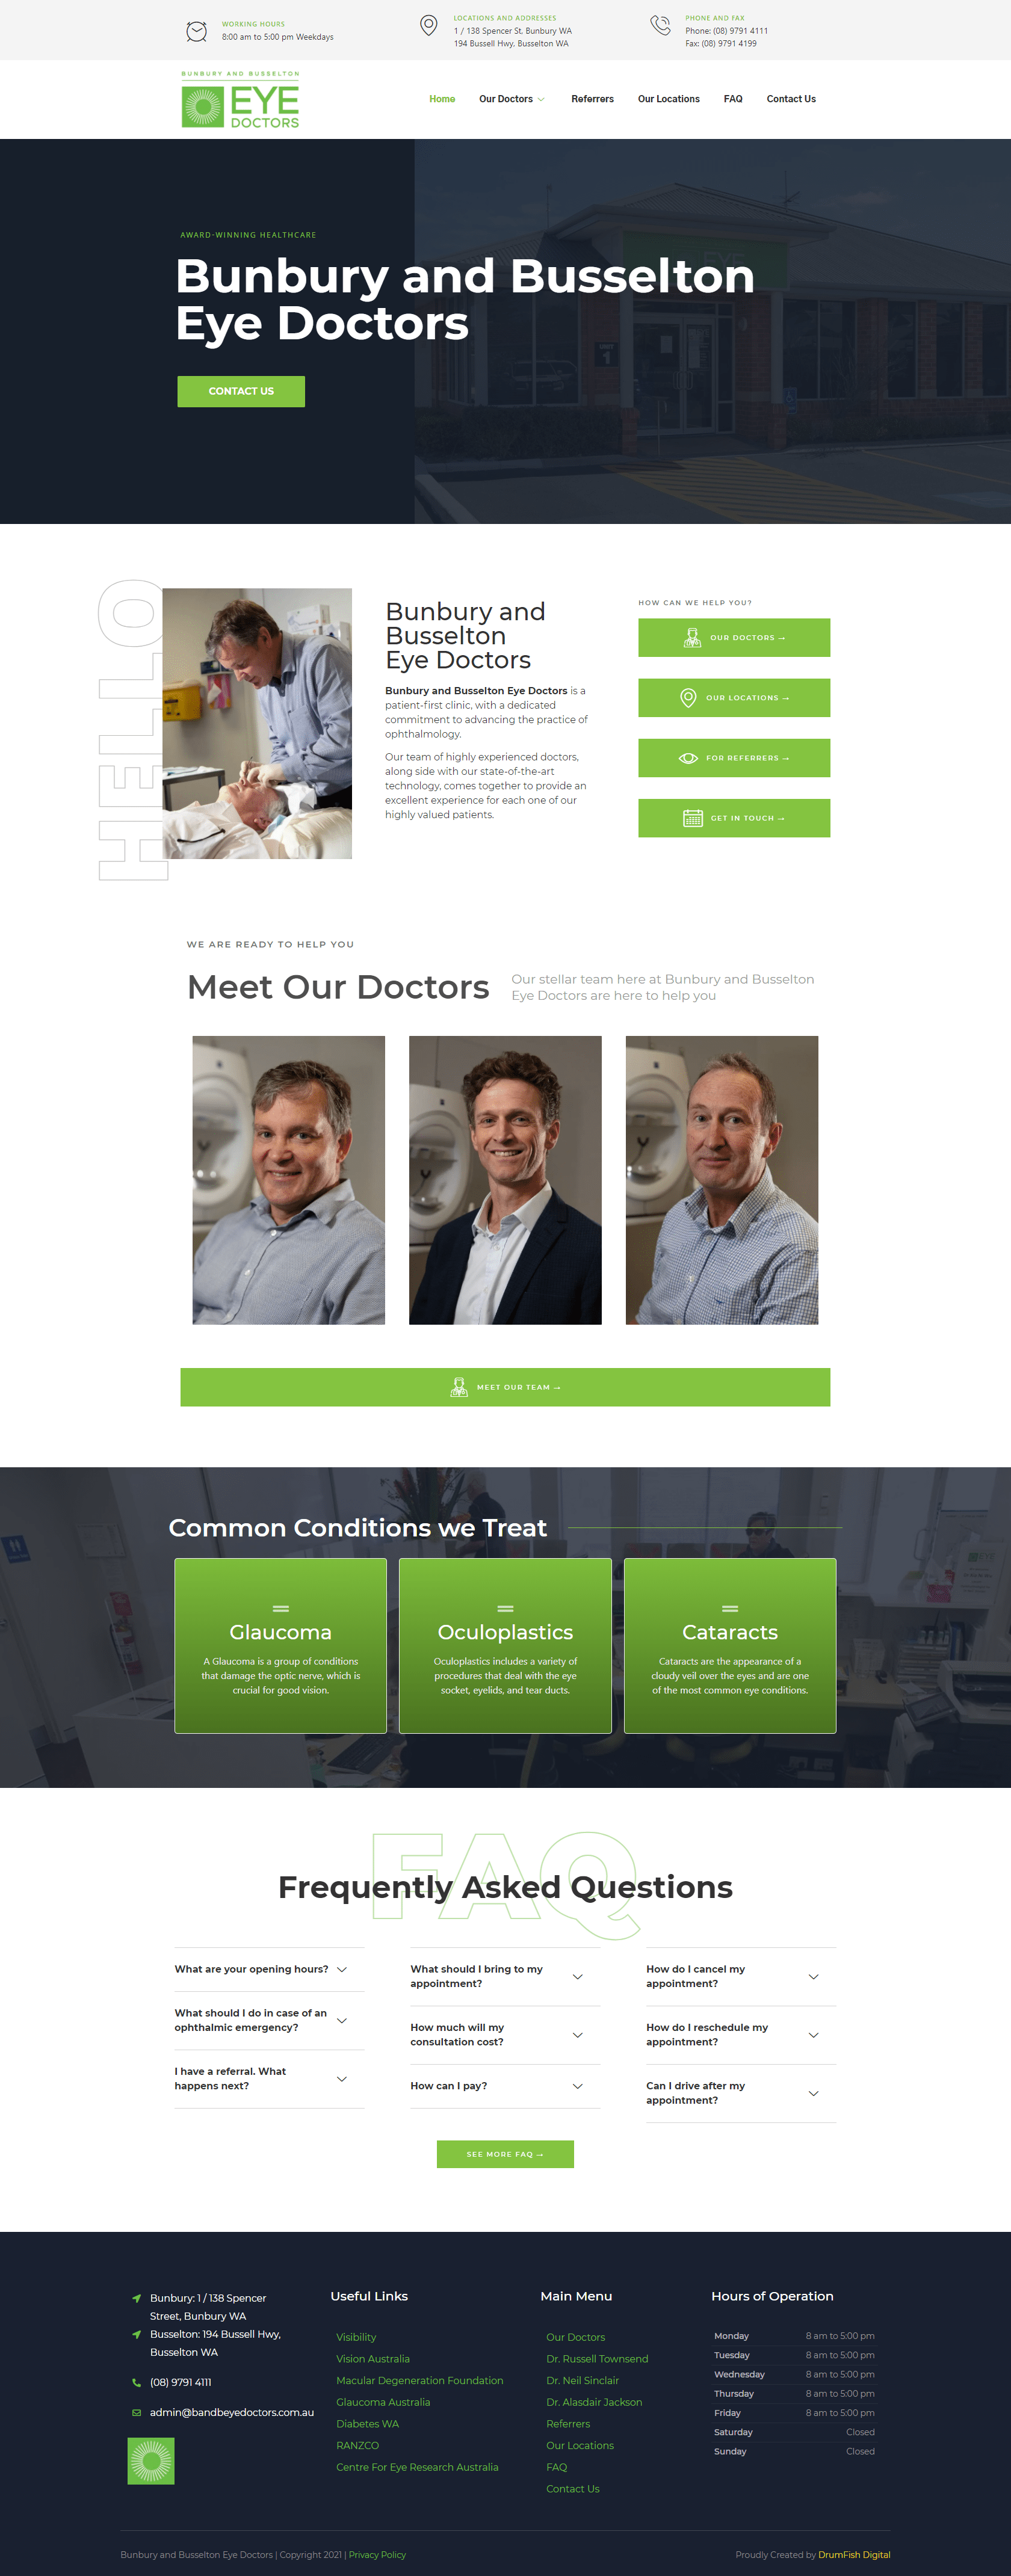 Bunbury and Busselton Eye Doctors Home Page